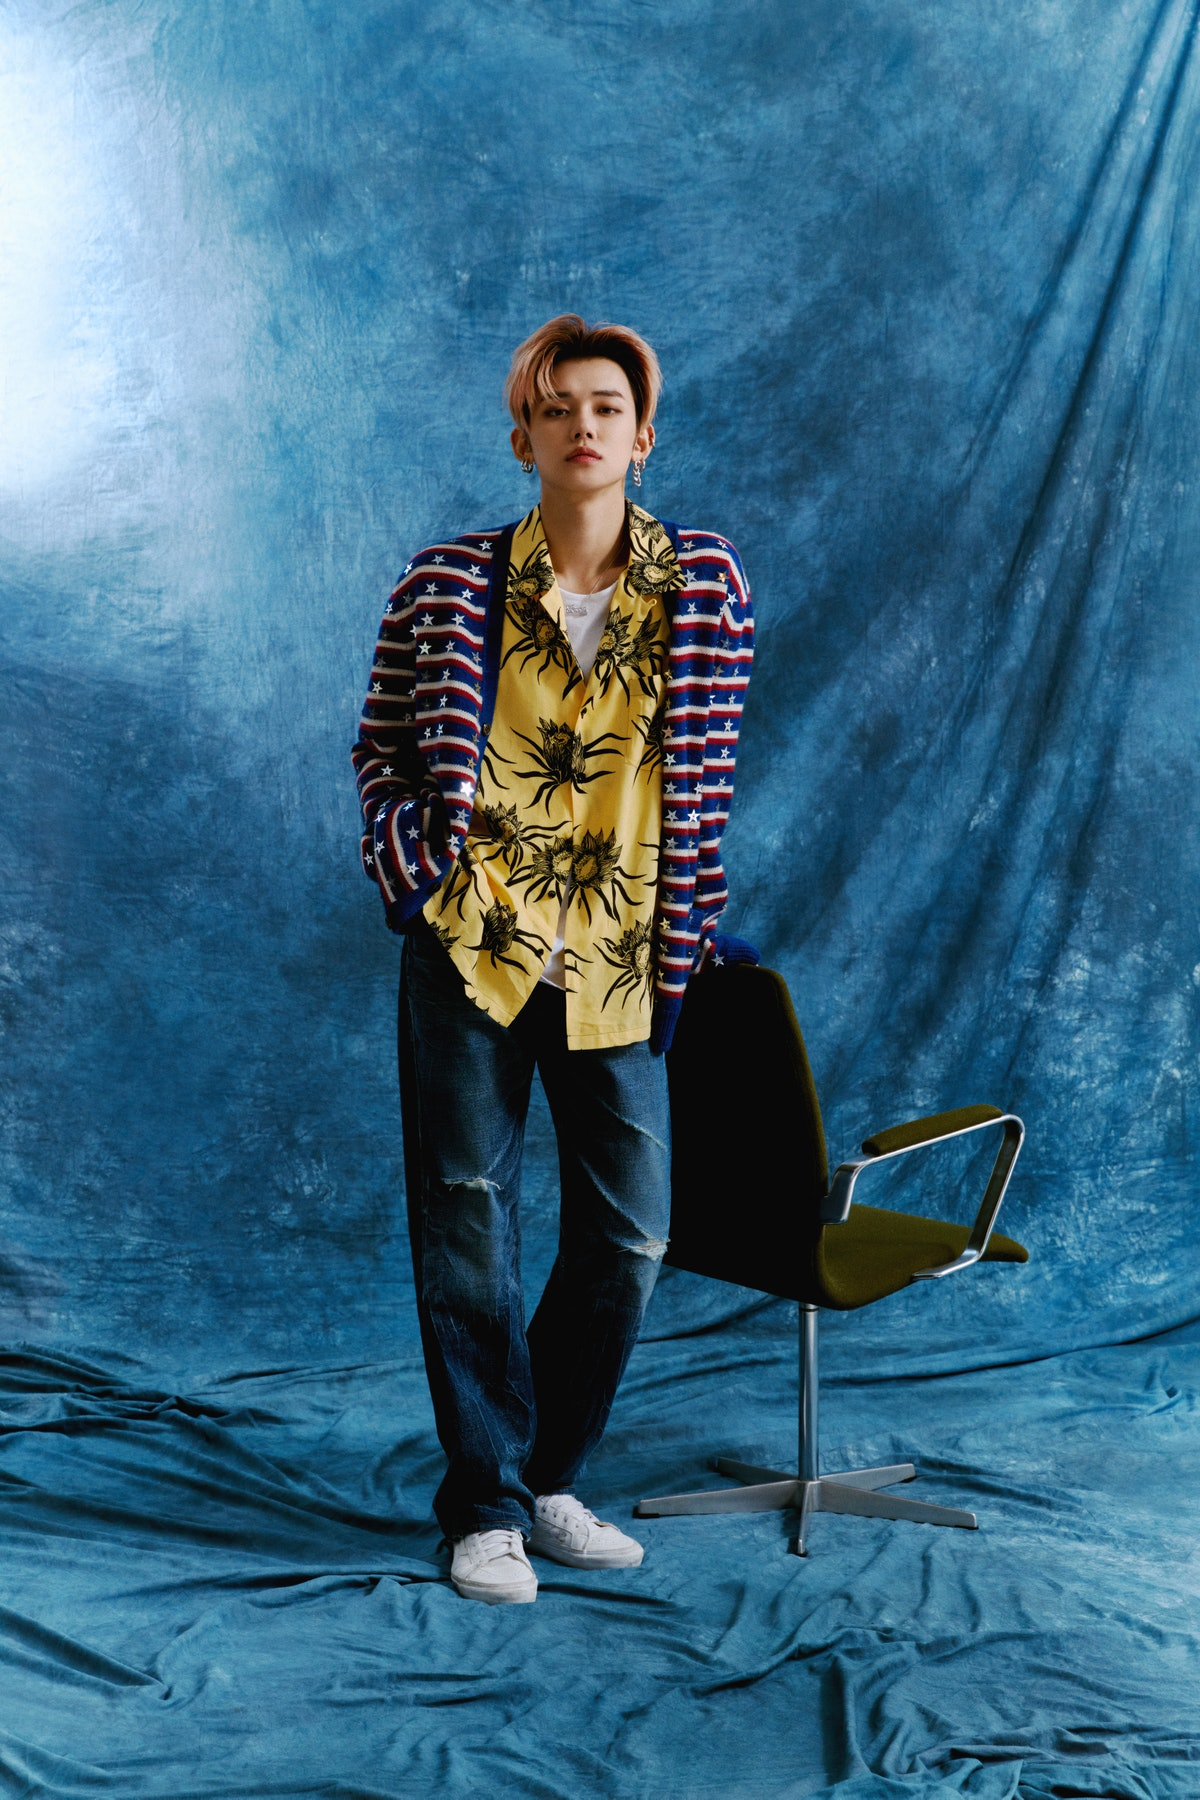 Celine by Hedi Slimane cardigan, shirt, jeans and necklace, stylist's own T-shirt and earrings, Vans shoes